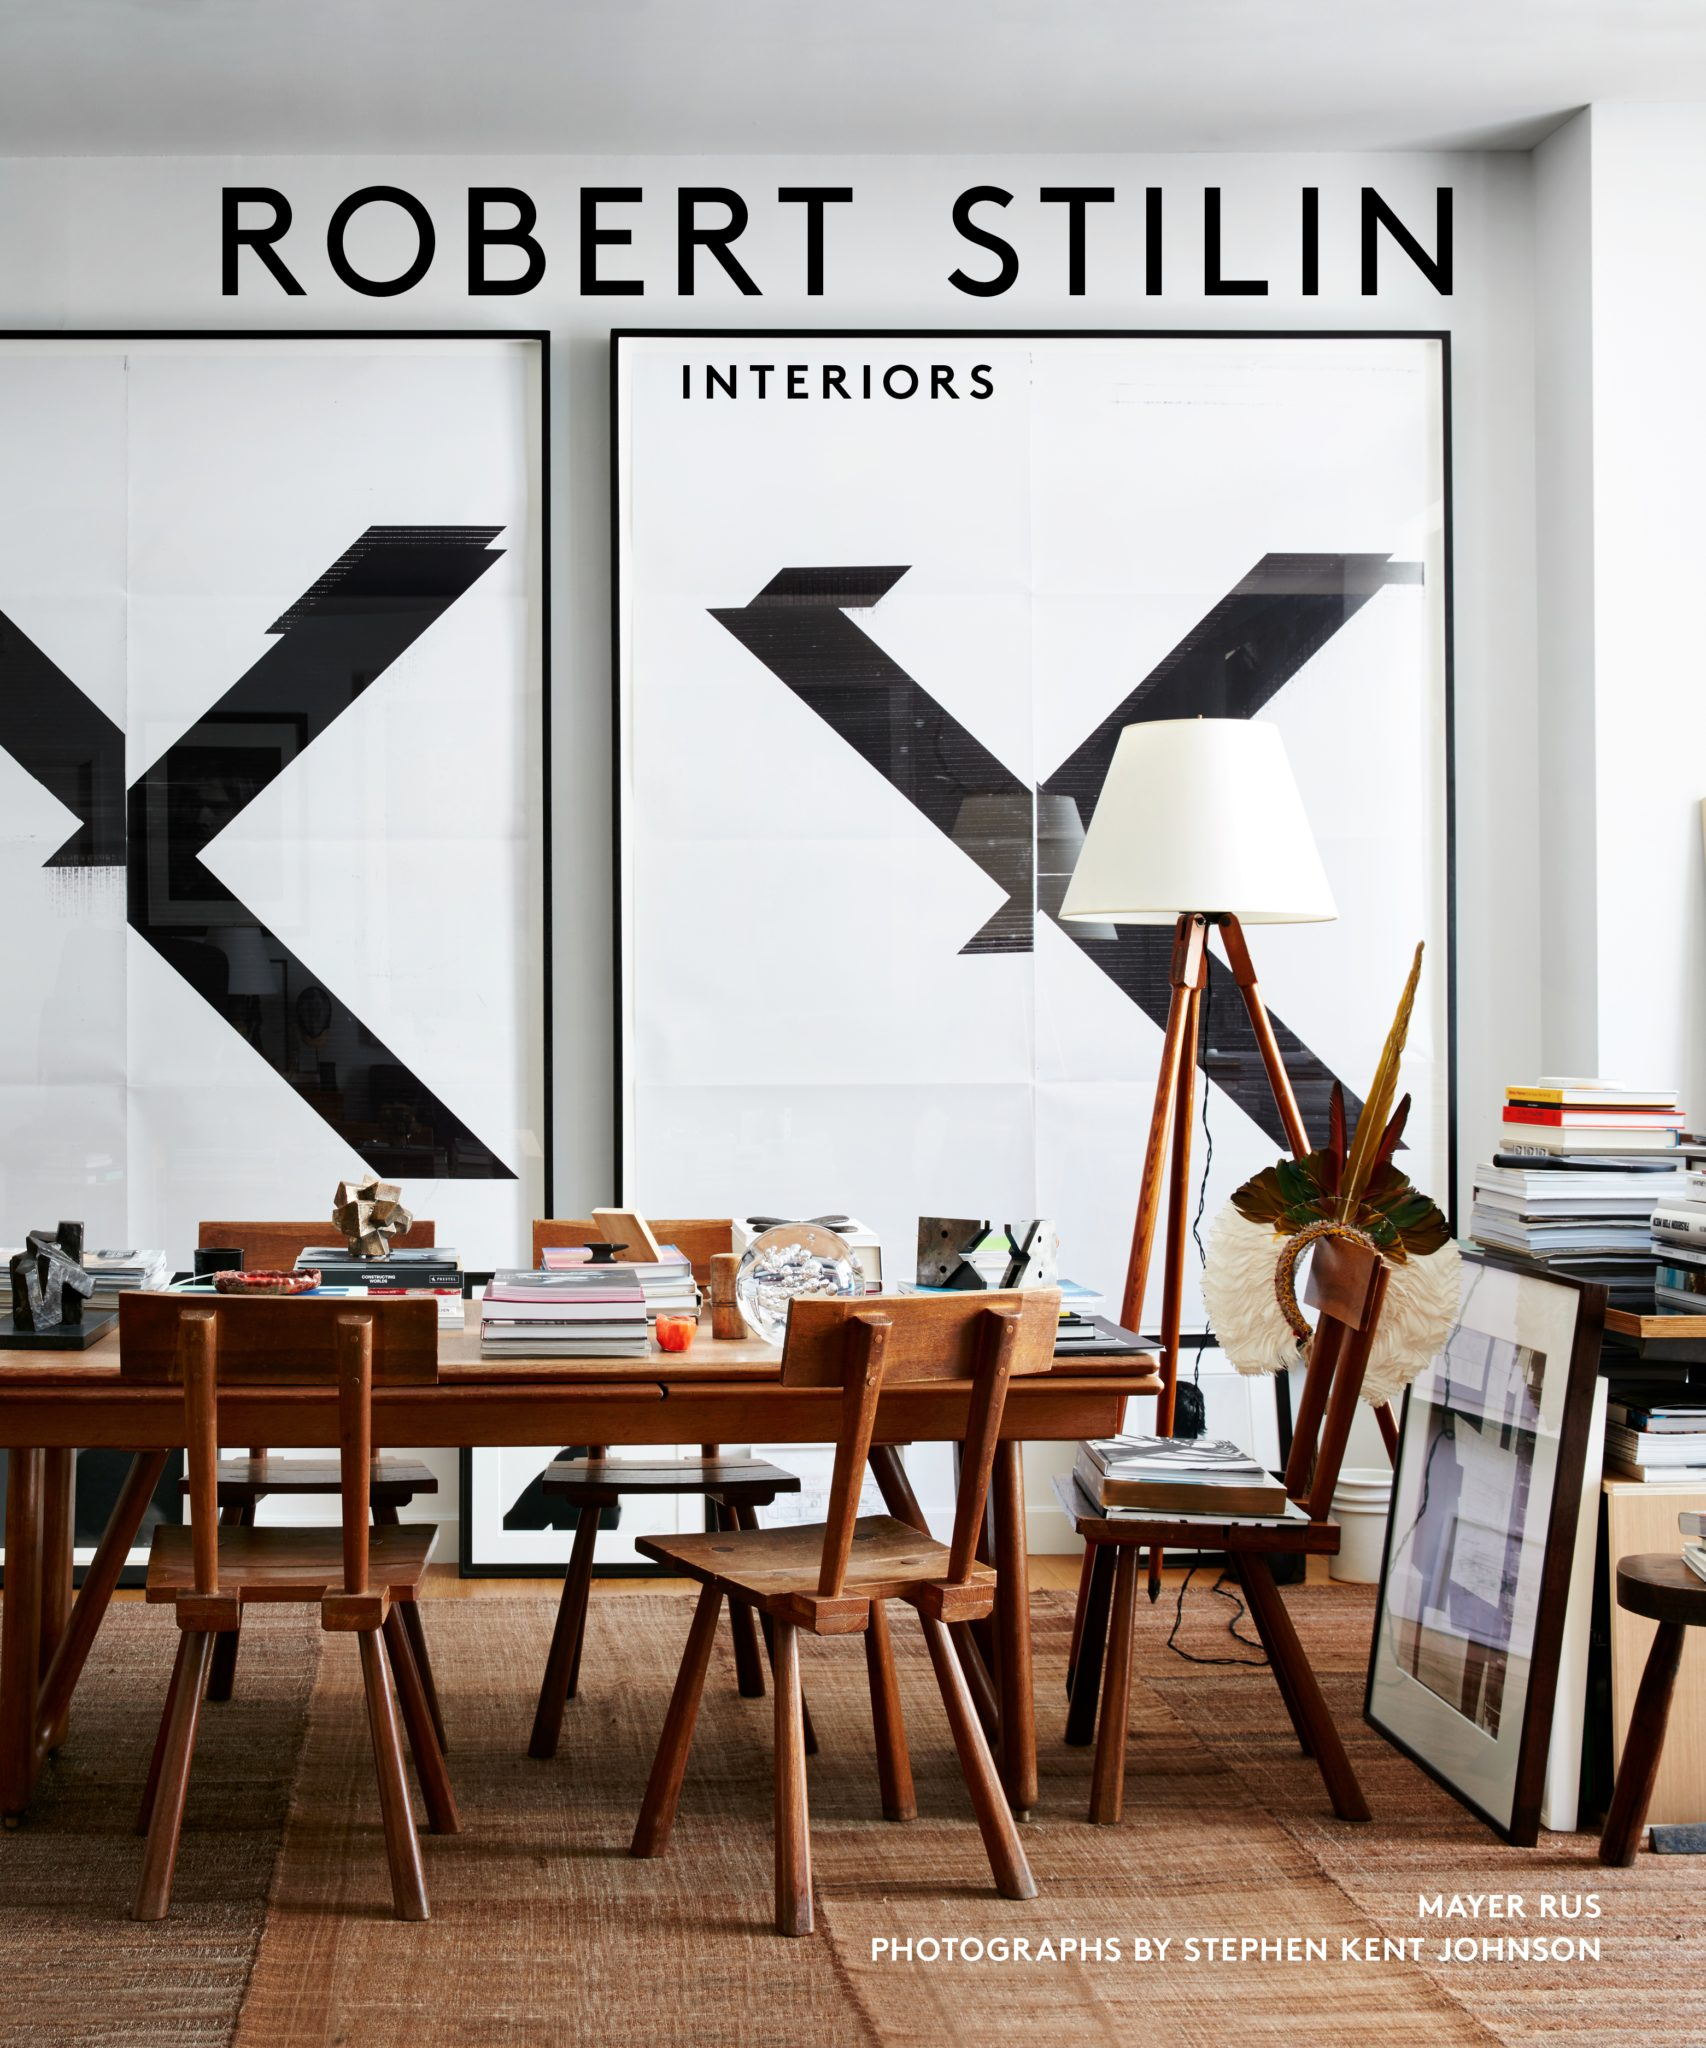 The designer's new book, Robert Stilin: Interiors, published by Vendome Press.